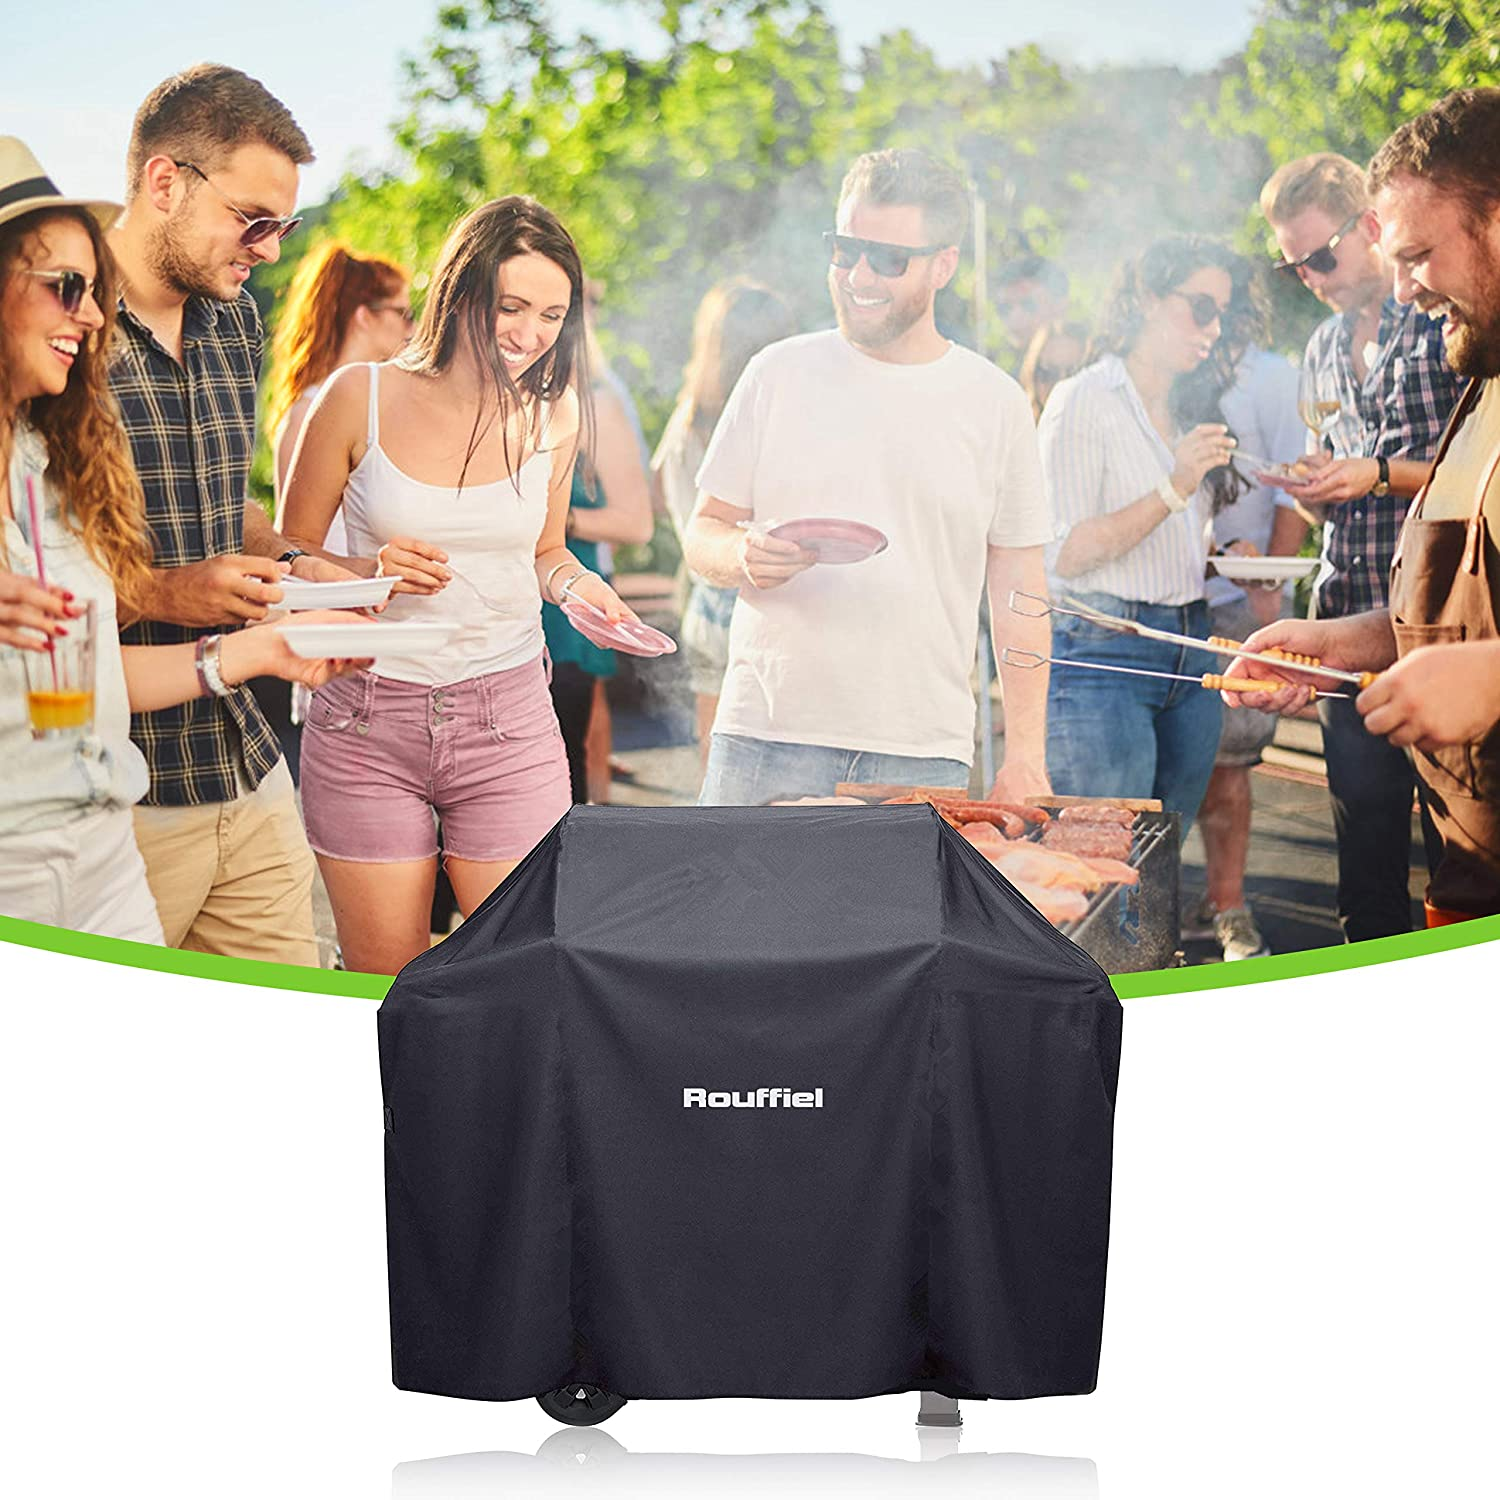 UV Resistant 58 inch Waterproof Grill Cover Outdoor Gas Grill Burner Covers Brinkmann Rip Proof with Storage Bag Rouffiel BBQ Grill Cover Jenn Air Char Broil Heavy Duty Gas Grill for Weber